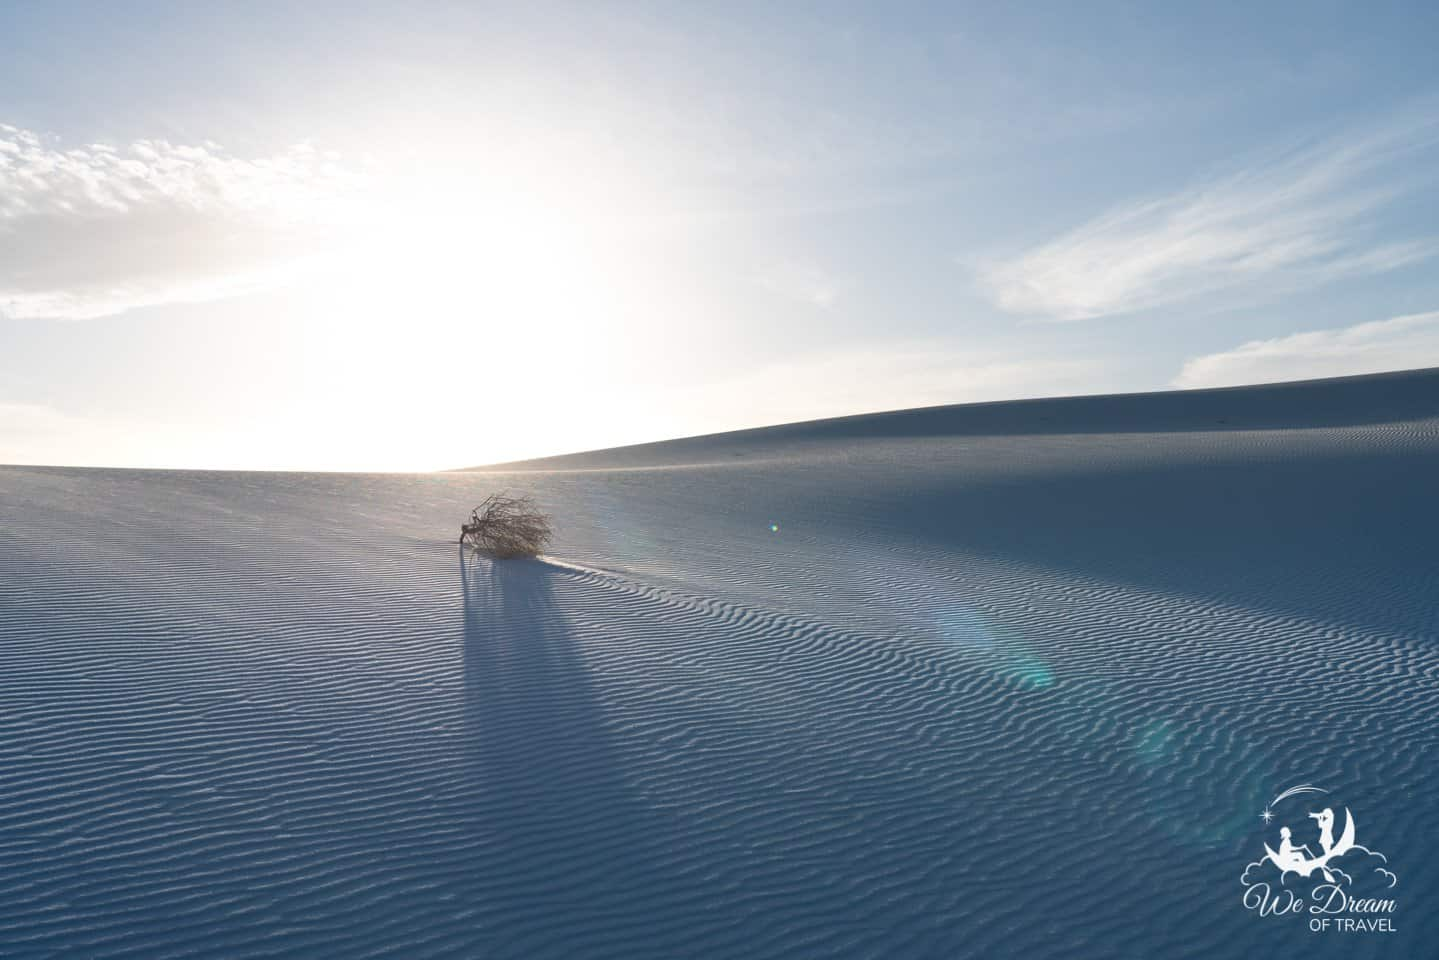 White Sands picture capturing the harsh wind and desolate landscape of the National Park.